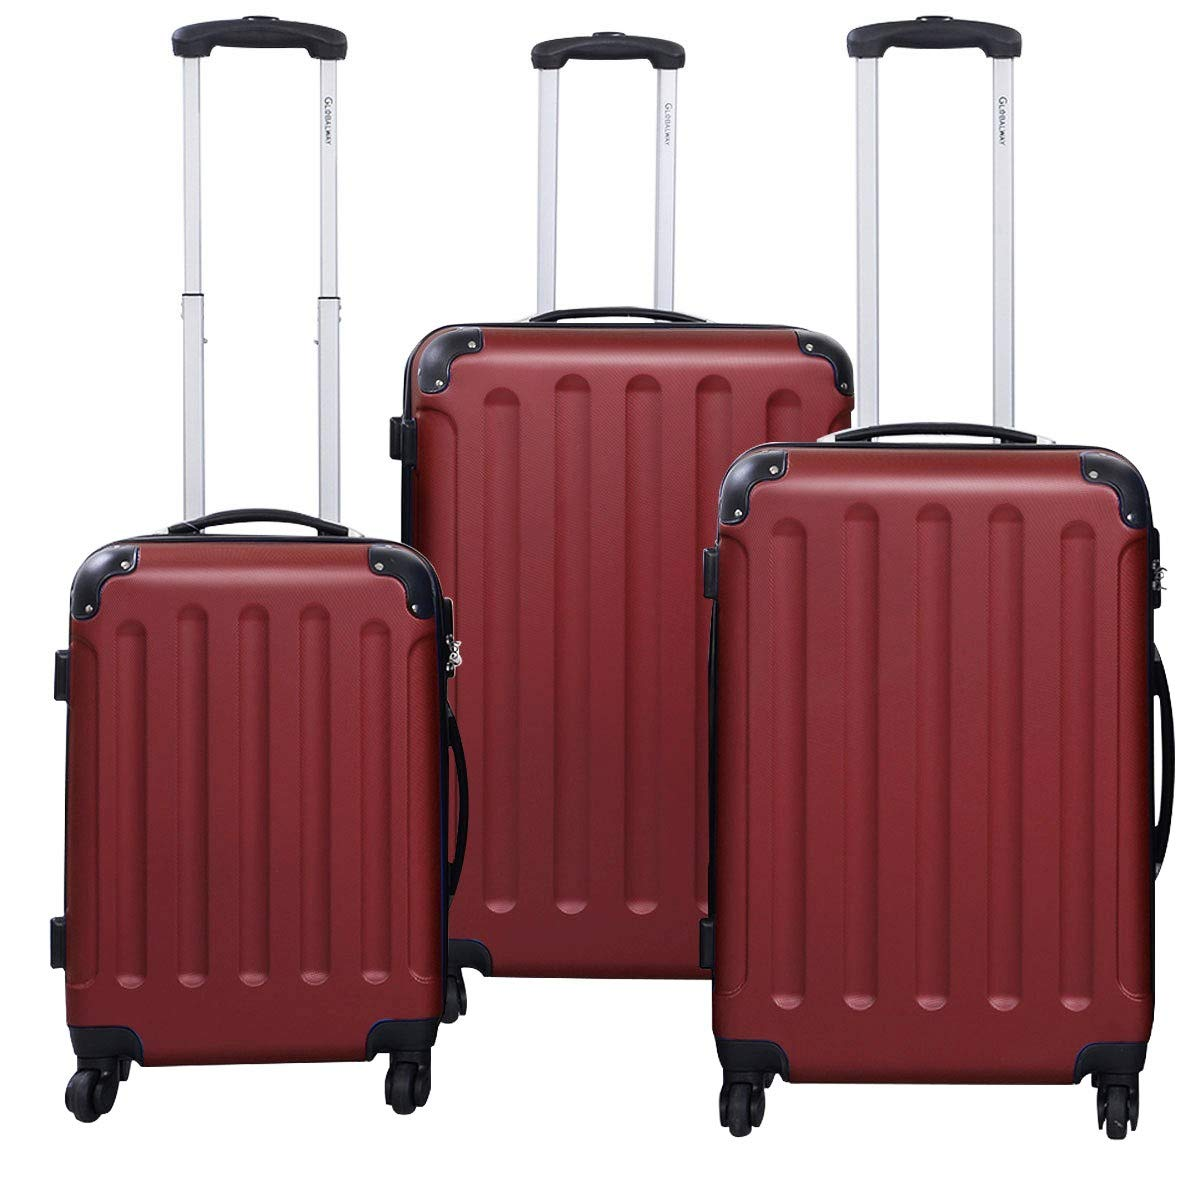 MD Group GLOBALWAY 3 pcs Luggage Trolley Case Set, Wine